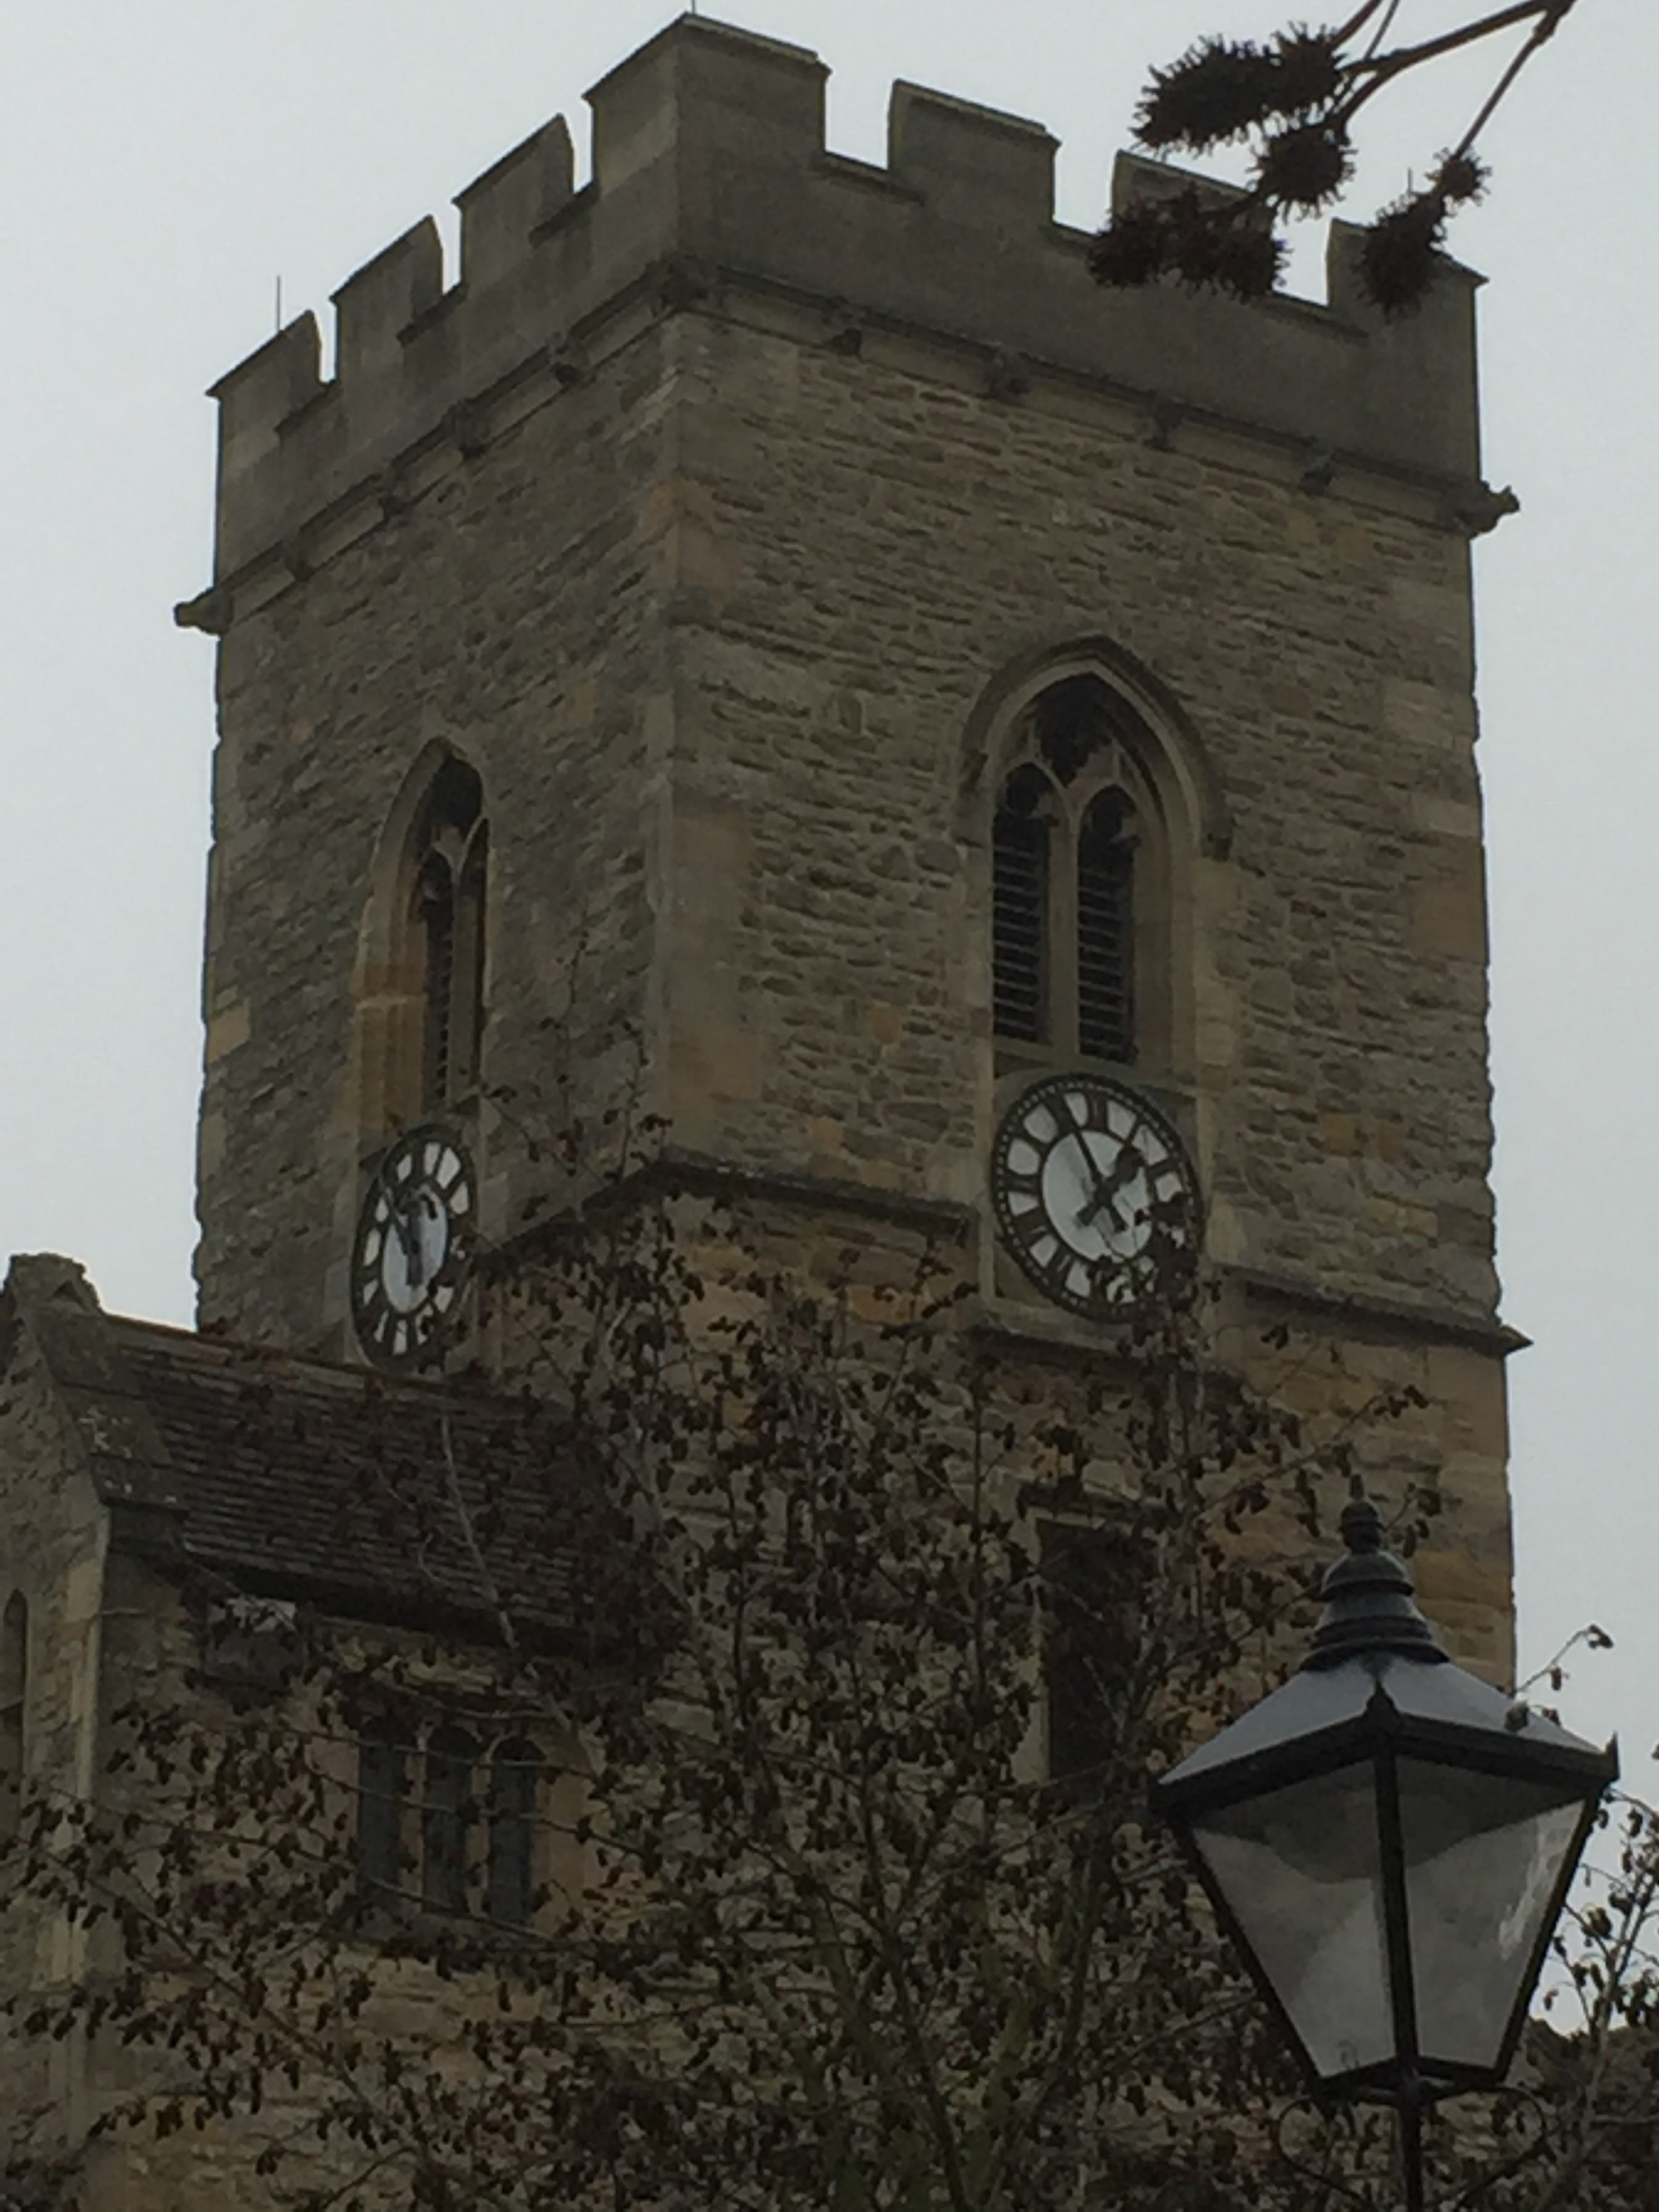 Clock faces of St Nicolas Church, Abingdon, showing sifferent times